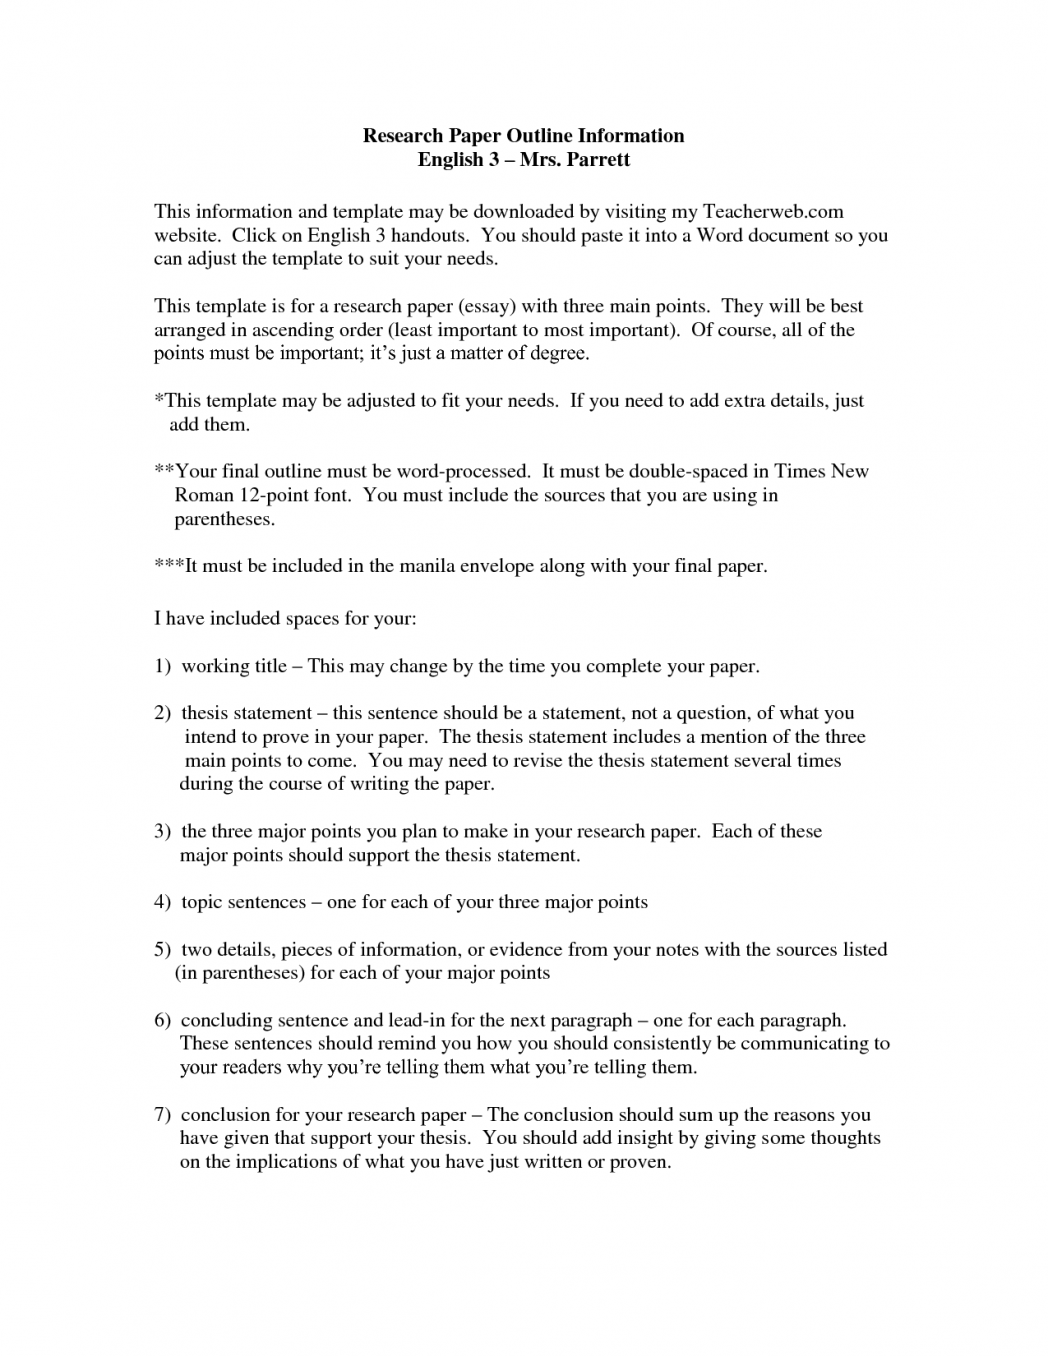 002 Animal Farm Research Paper Topics Uncategorized Theme Essay Outline Essays On Computers Book Example Critical Singular Full